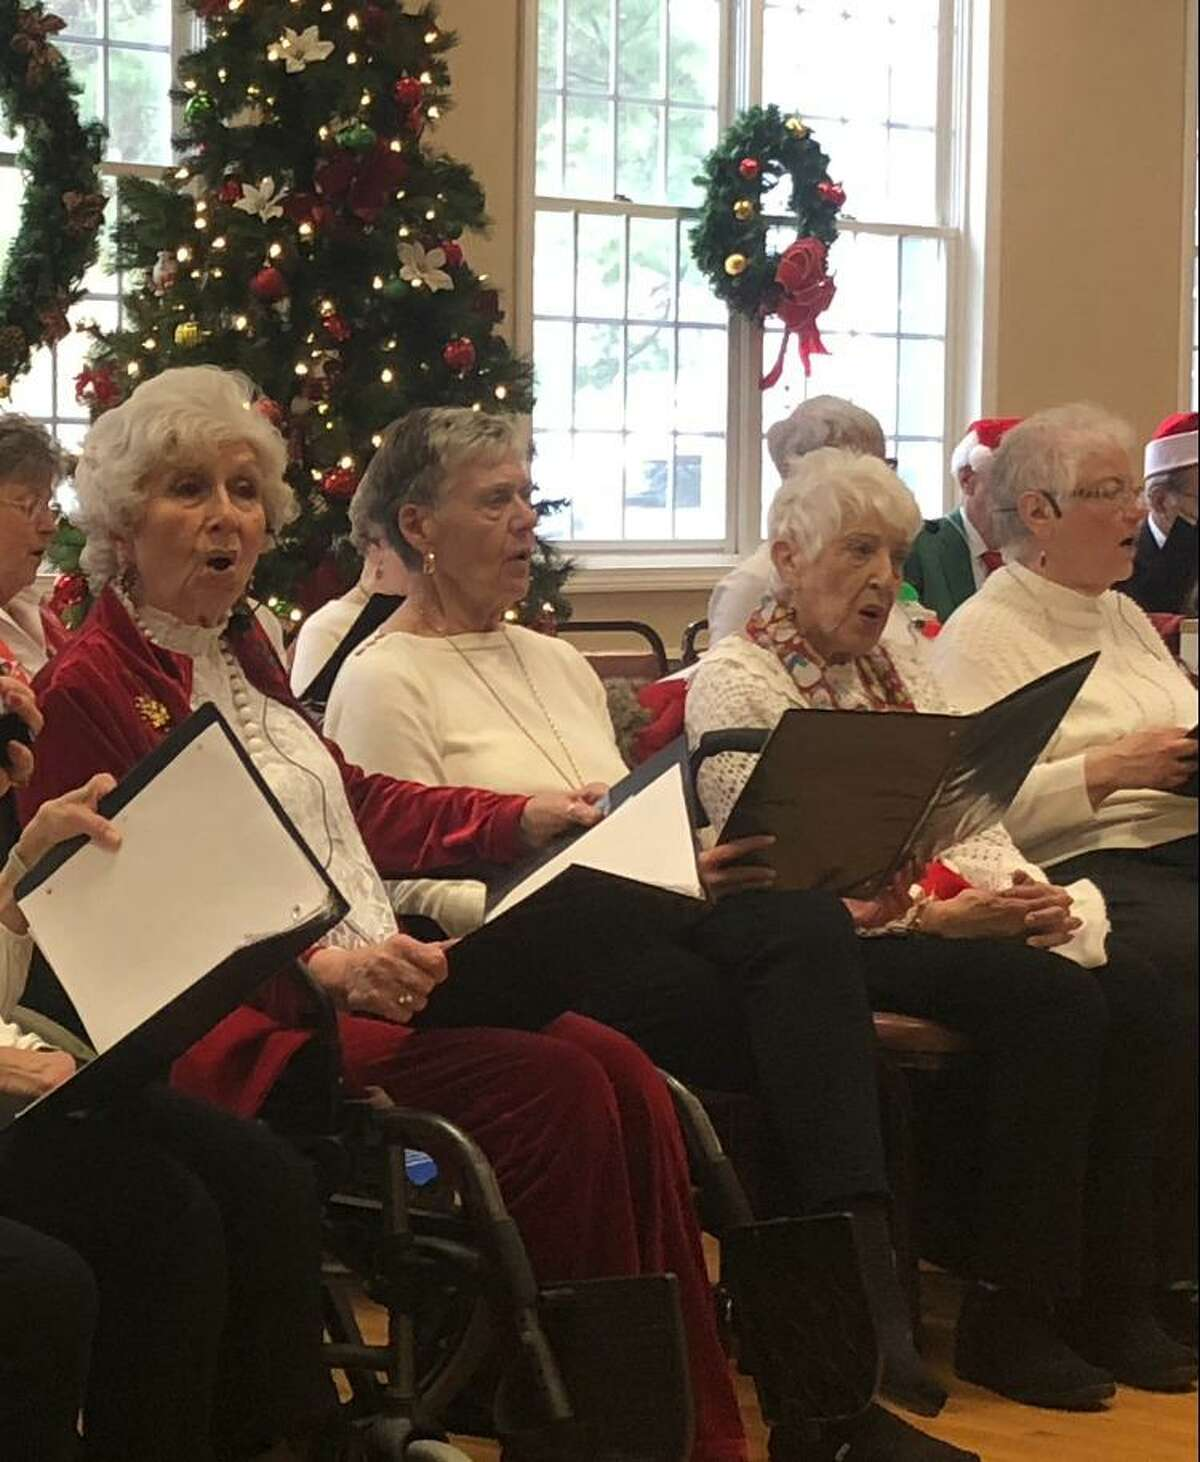 Christmas was in the air at the city's senior center Friday as the Shelton Songsters regaled a packed house with some holiday classics.